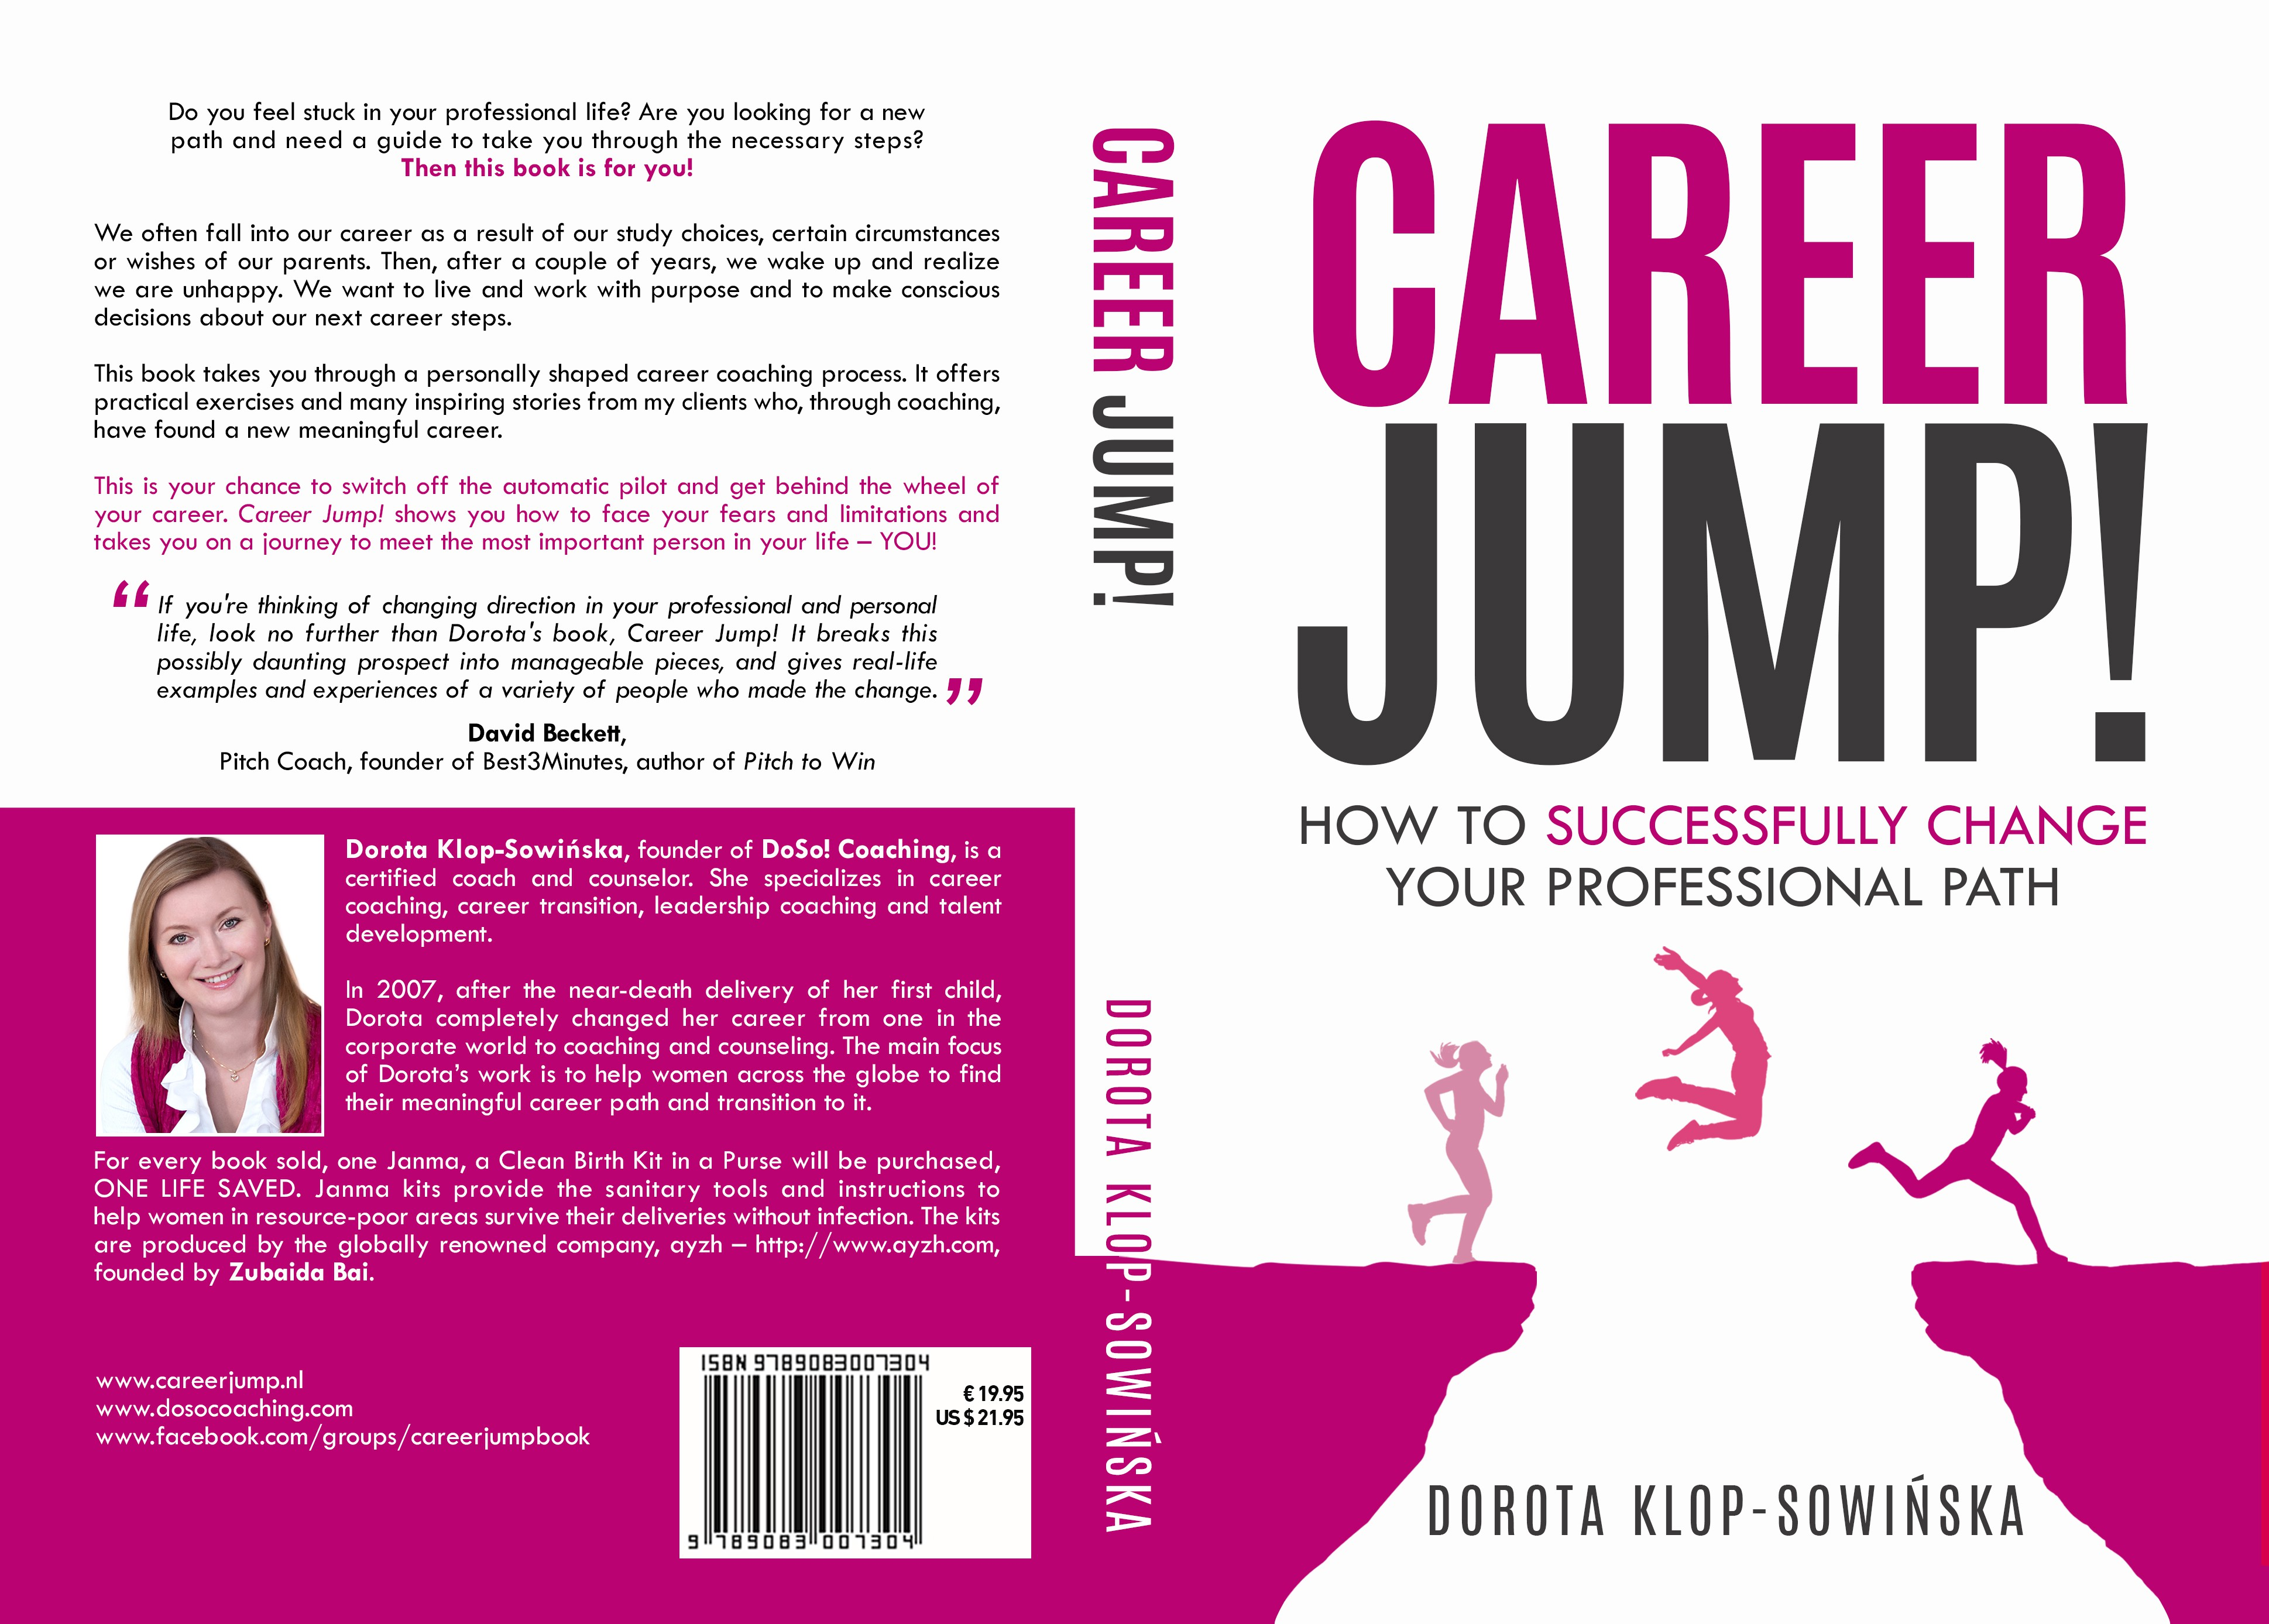 Design a powerful book cover for a self-help career change book!!!